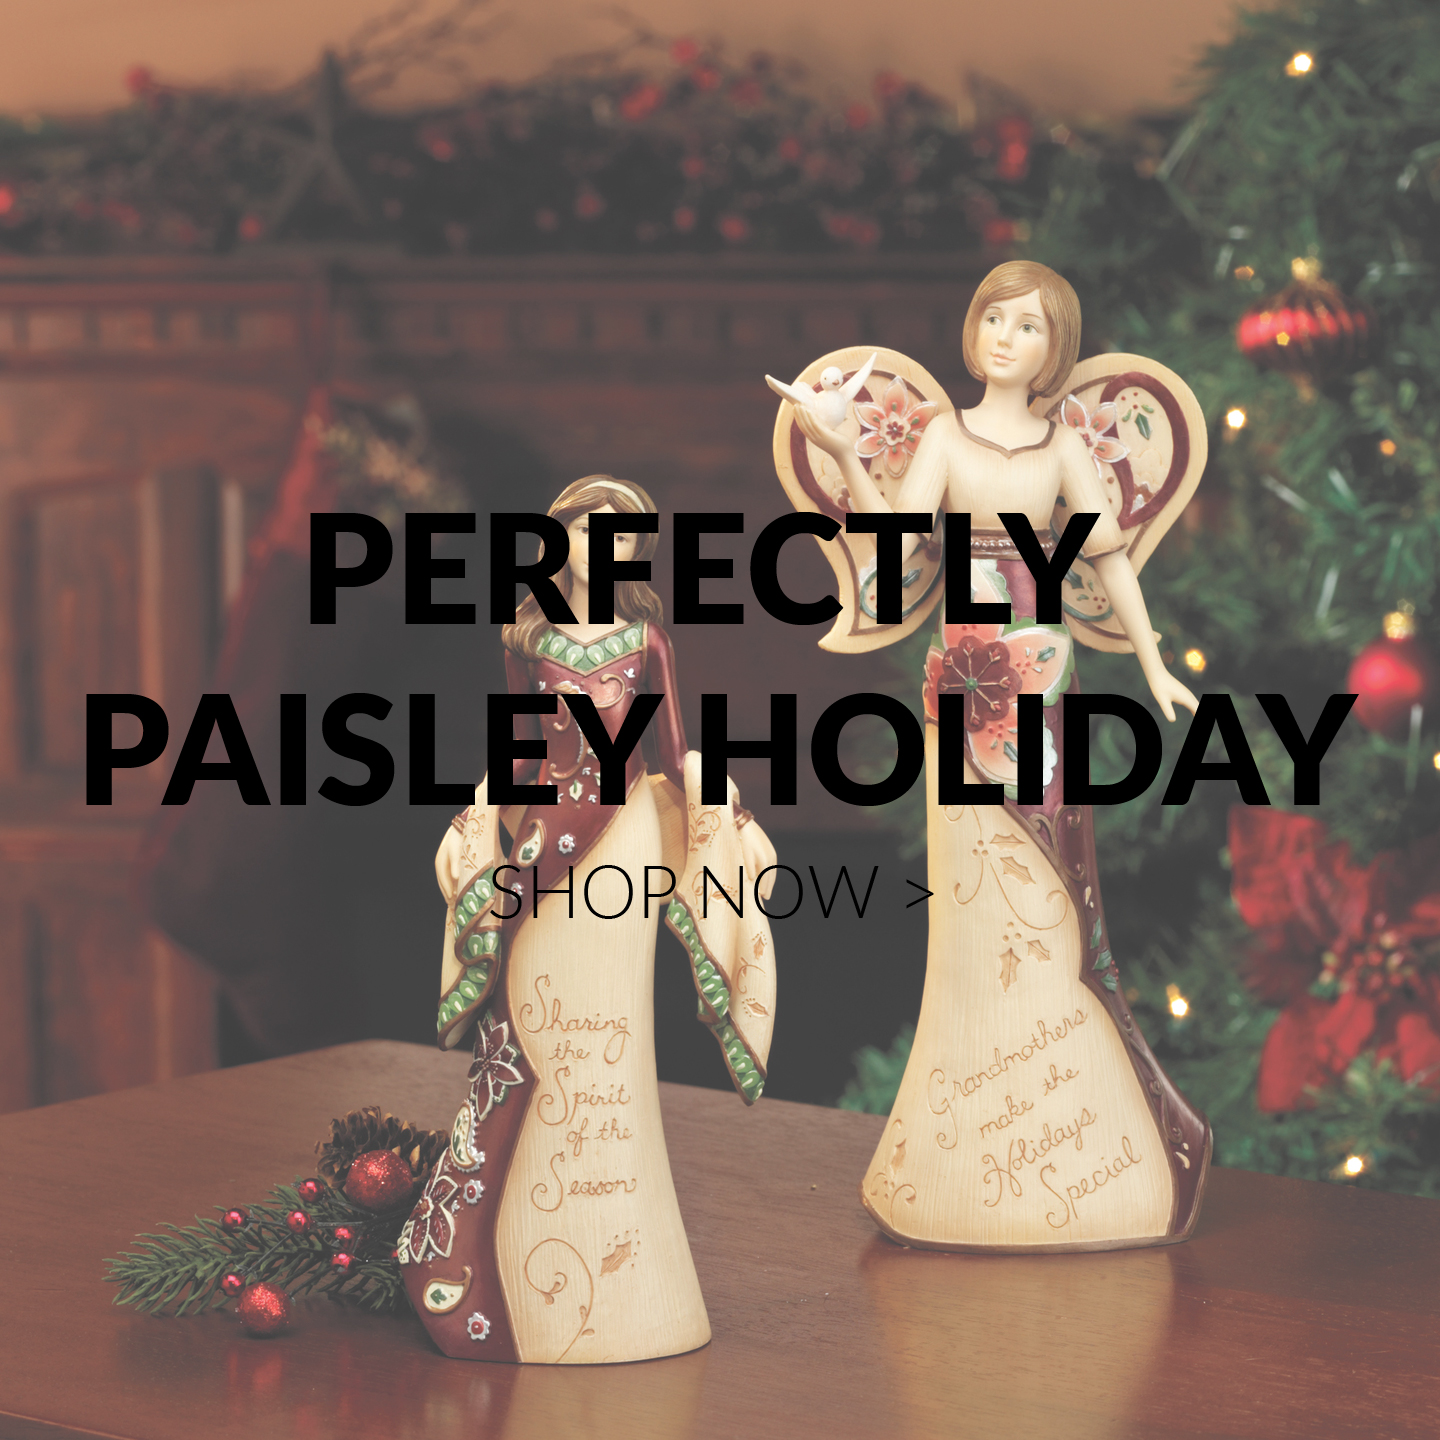 Perfectly Paisley Holiday